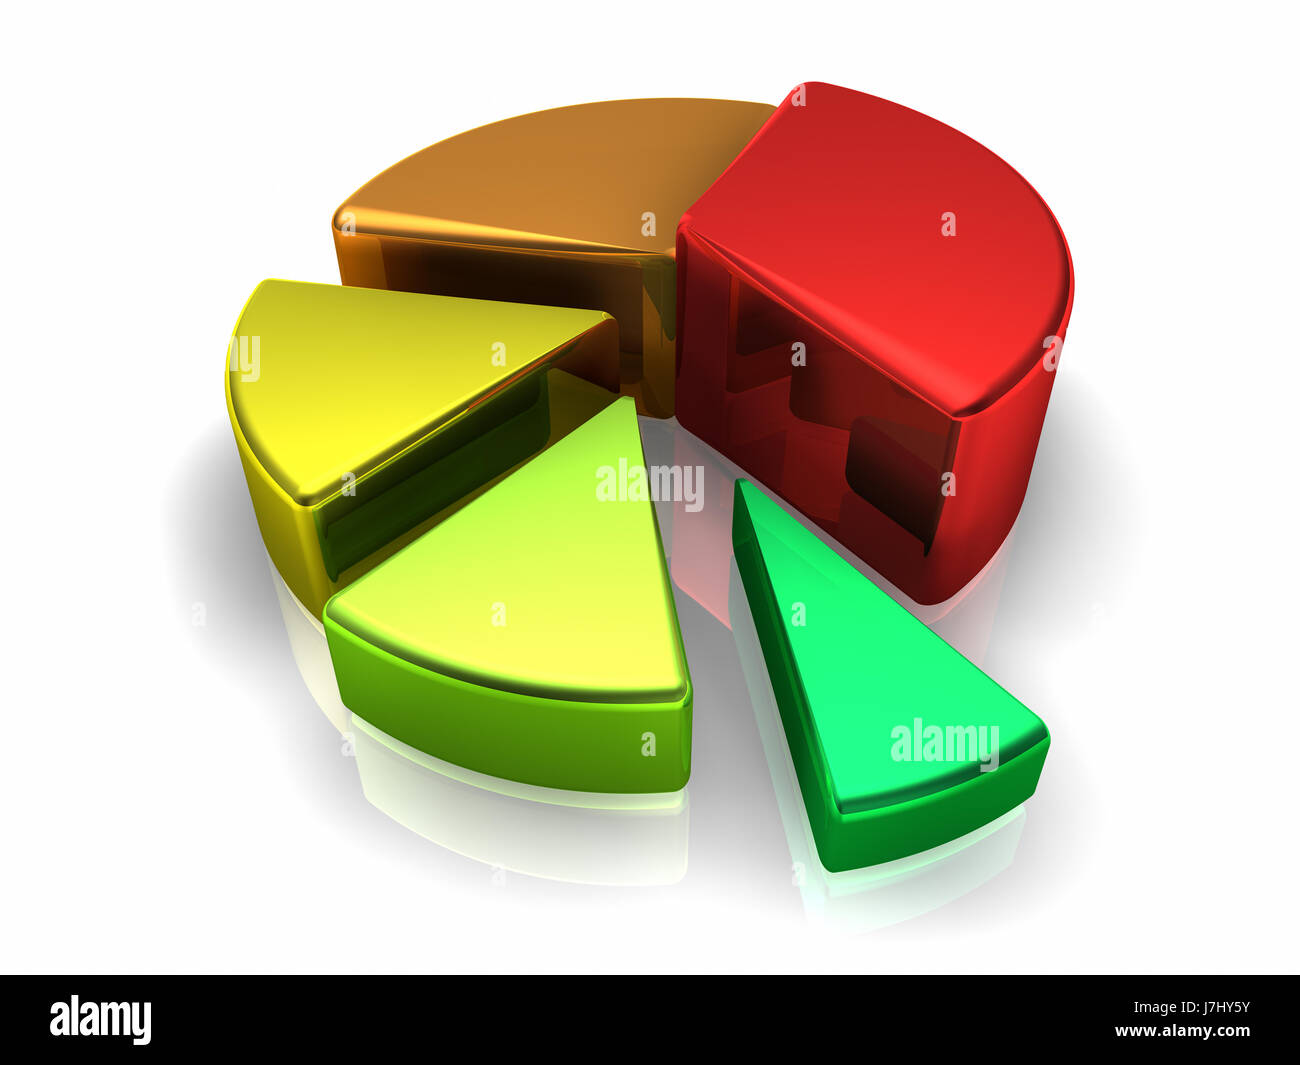 chart cake pie cakes bright shiny metallic colored diagram